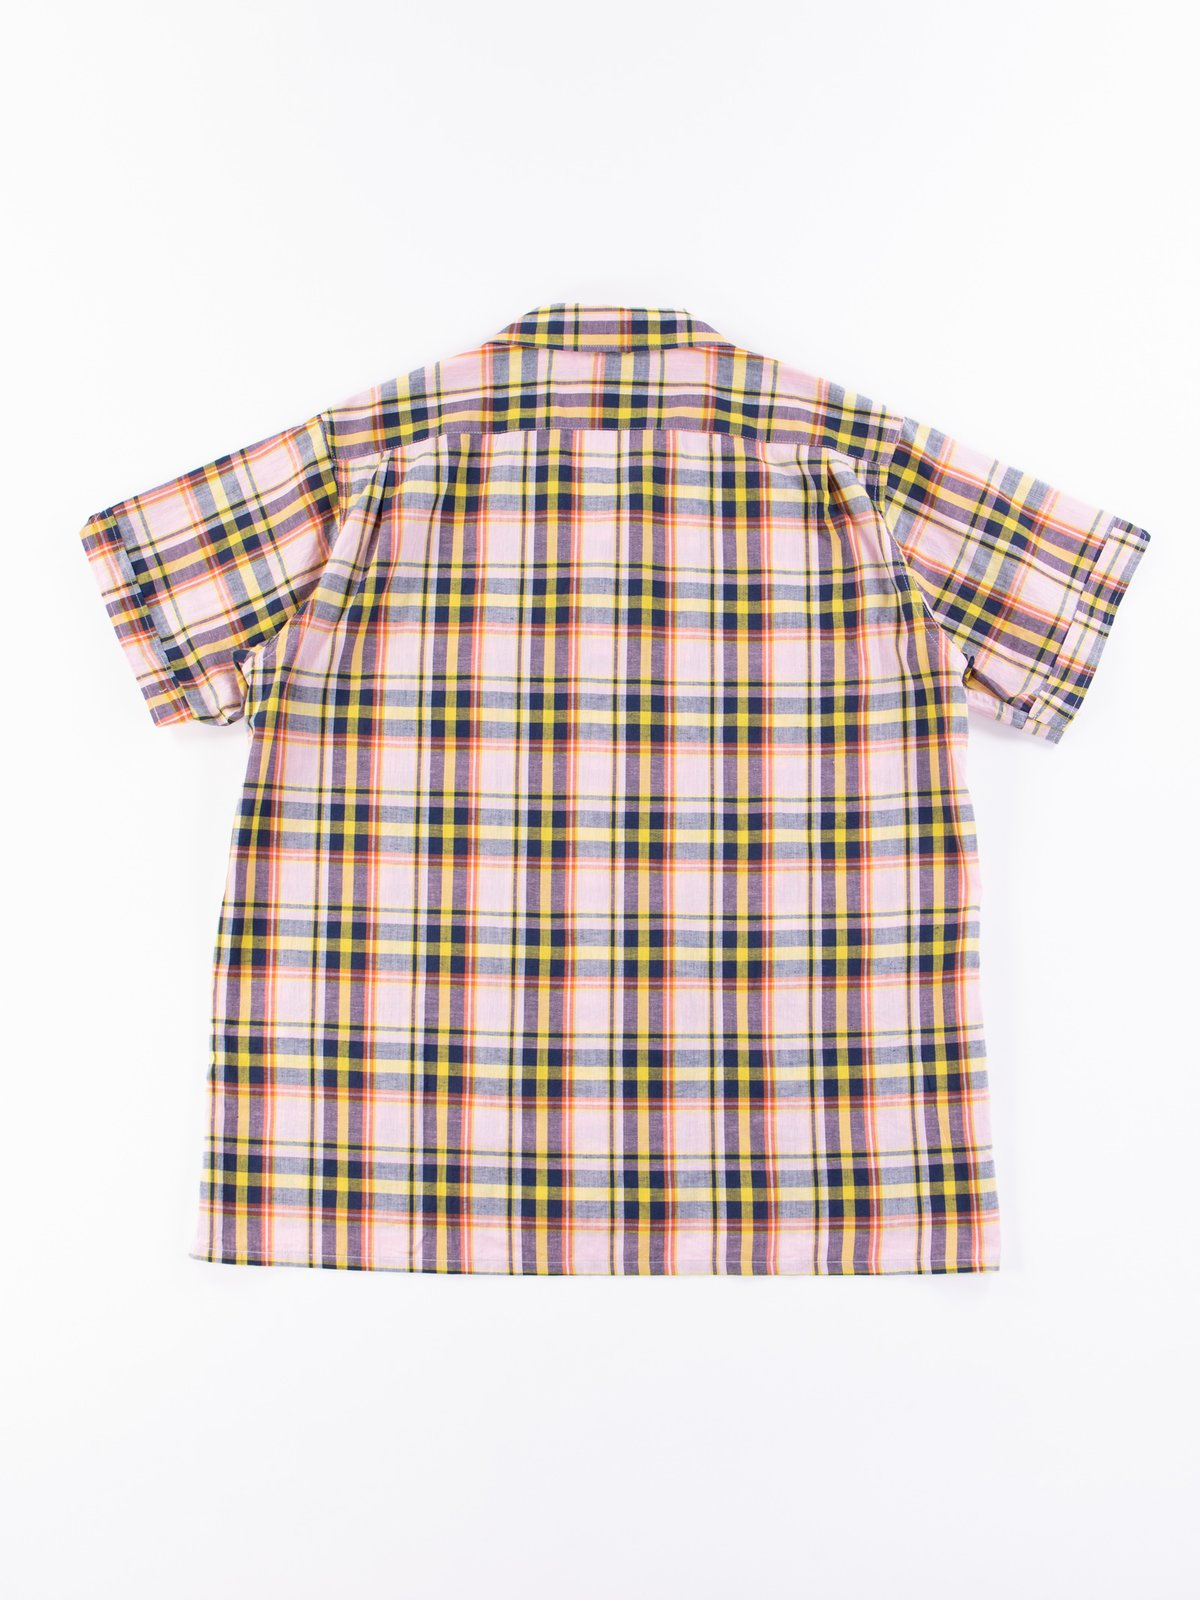 Pink/Yellow CL Madras Plaid Camp Shirt - Image 6